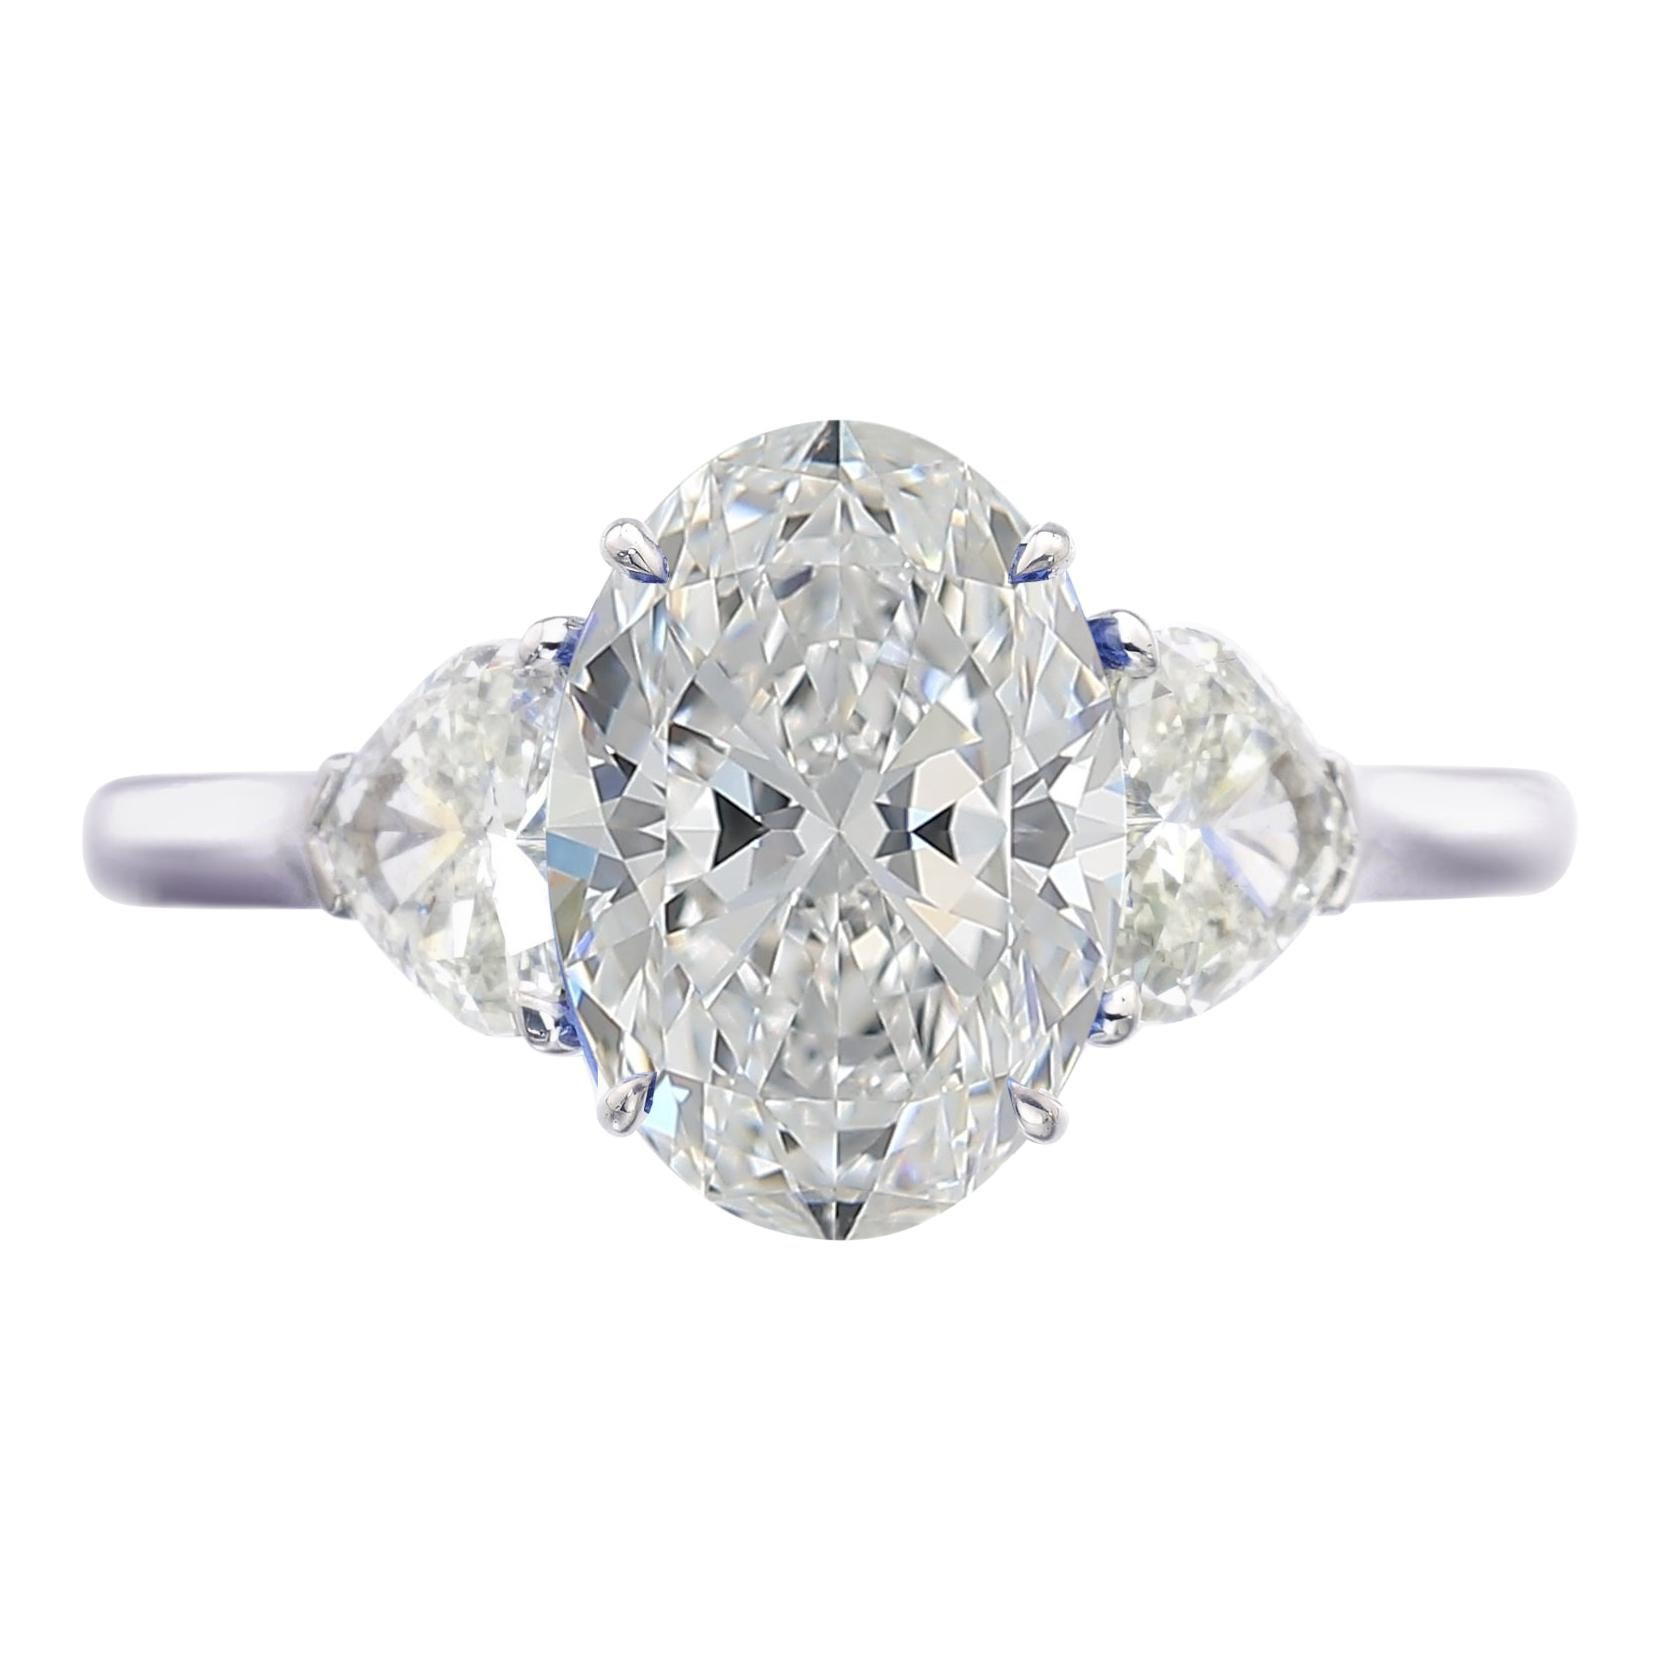 GIA Certified 2 Carat Oval Diamond Solitaire Platinum Ring